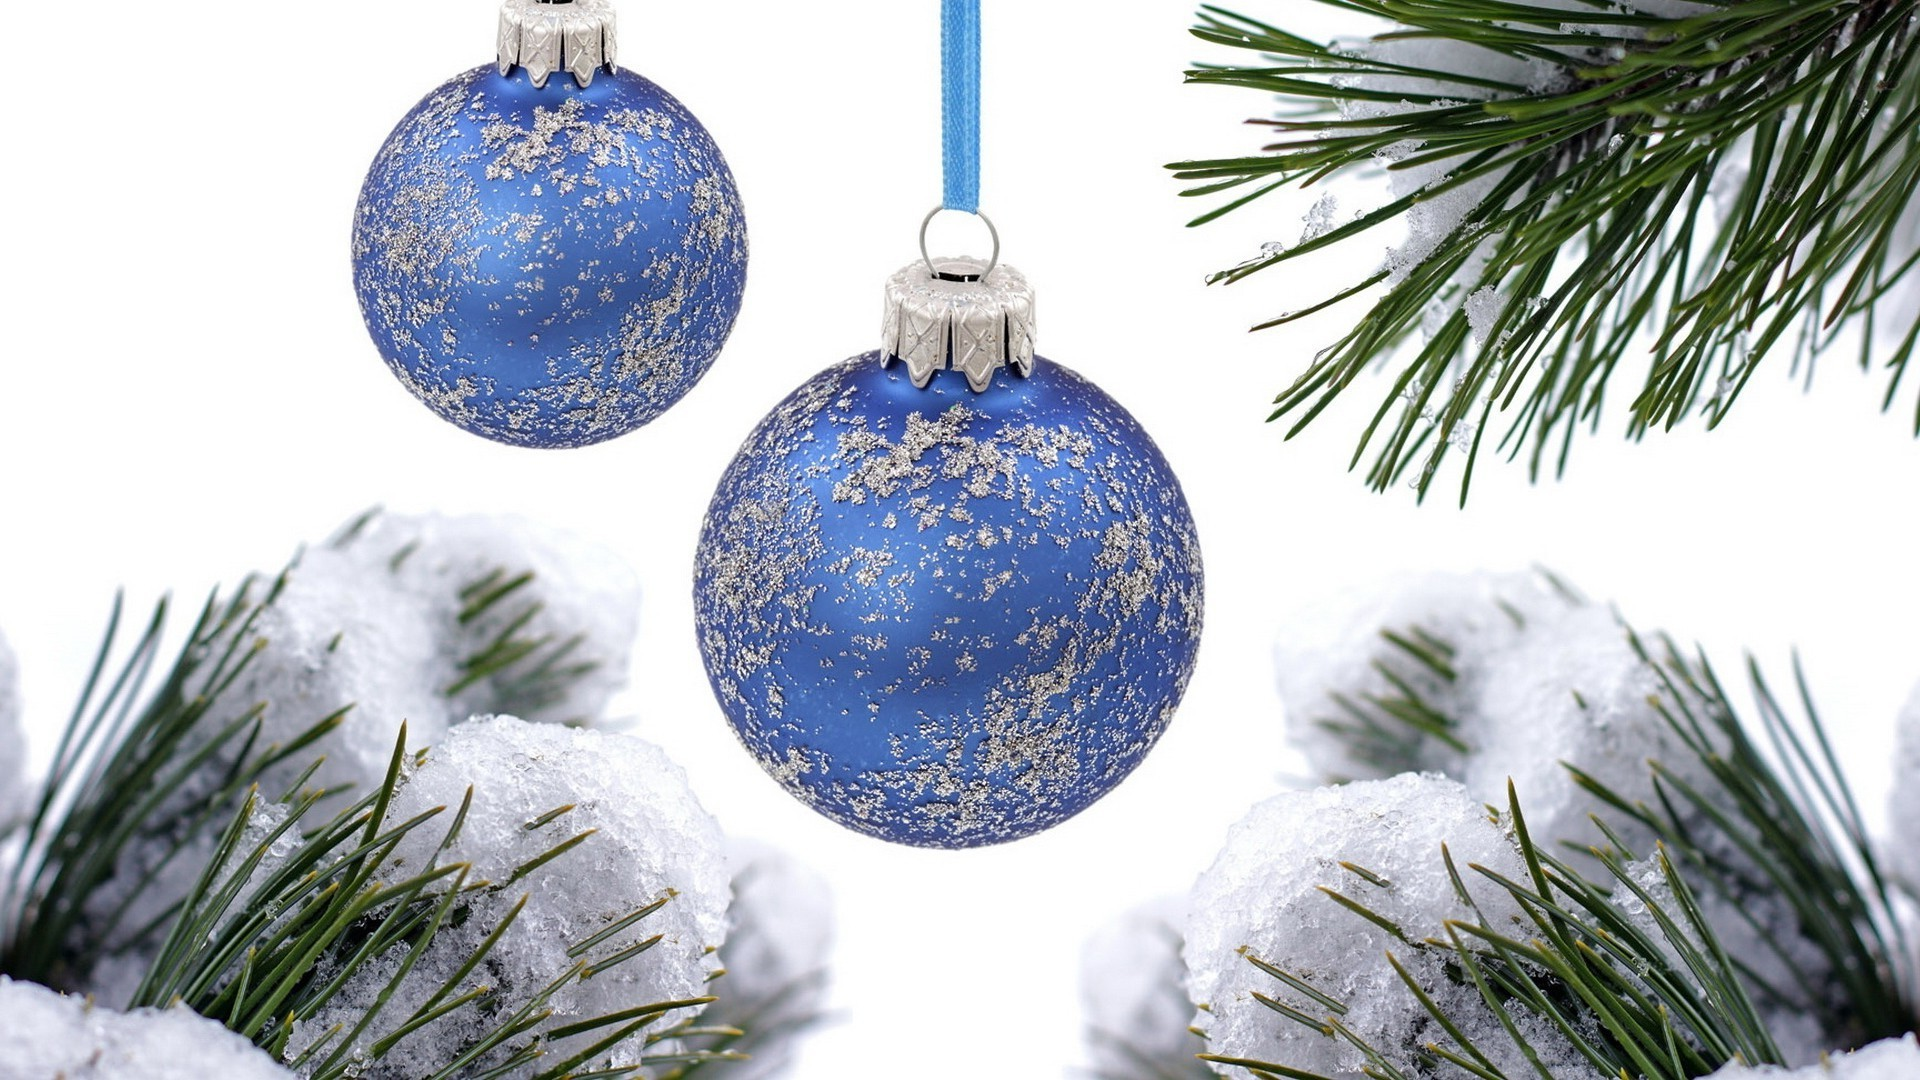 Blue balls on the Christmas tree. iPhone wallpapers for free.